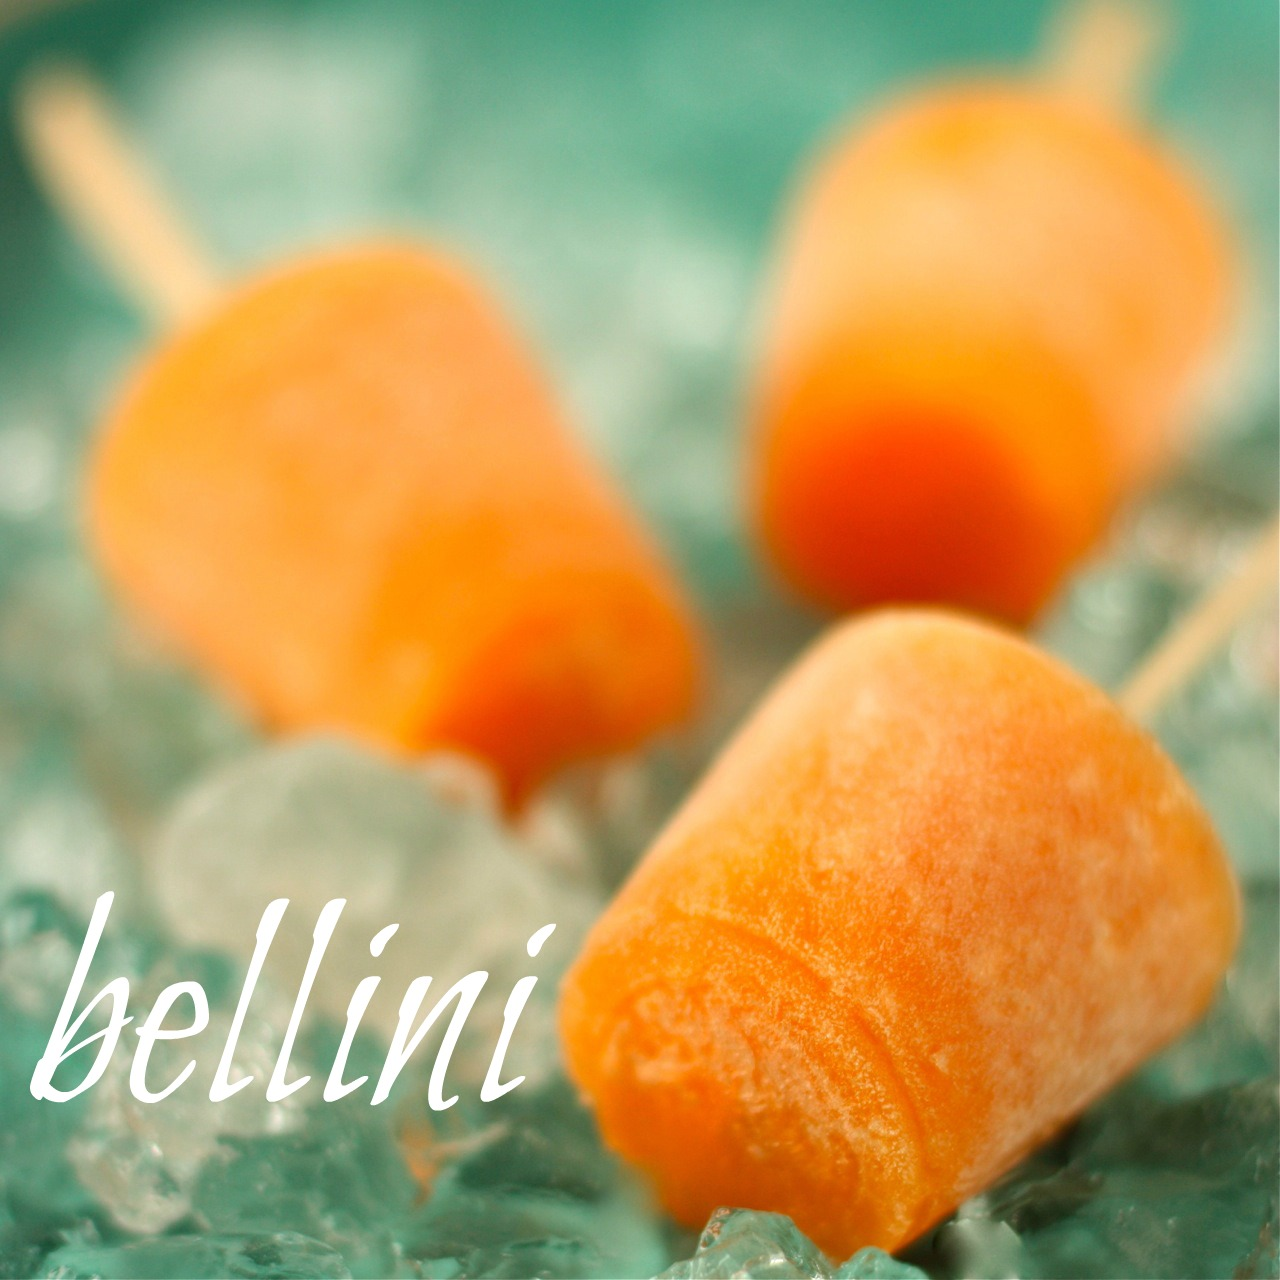 bellini peach thyme bellini pb j pops moon pie owl pops raspberry ...